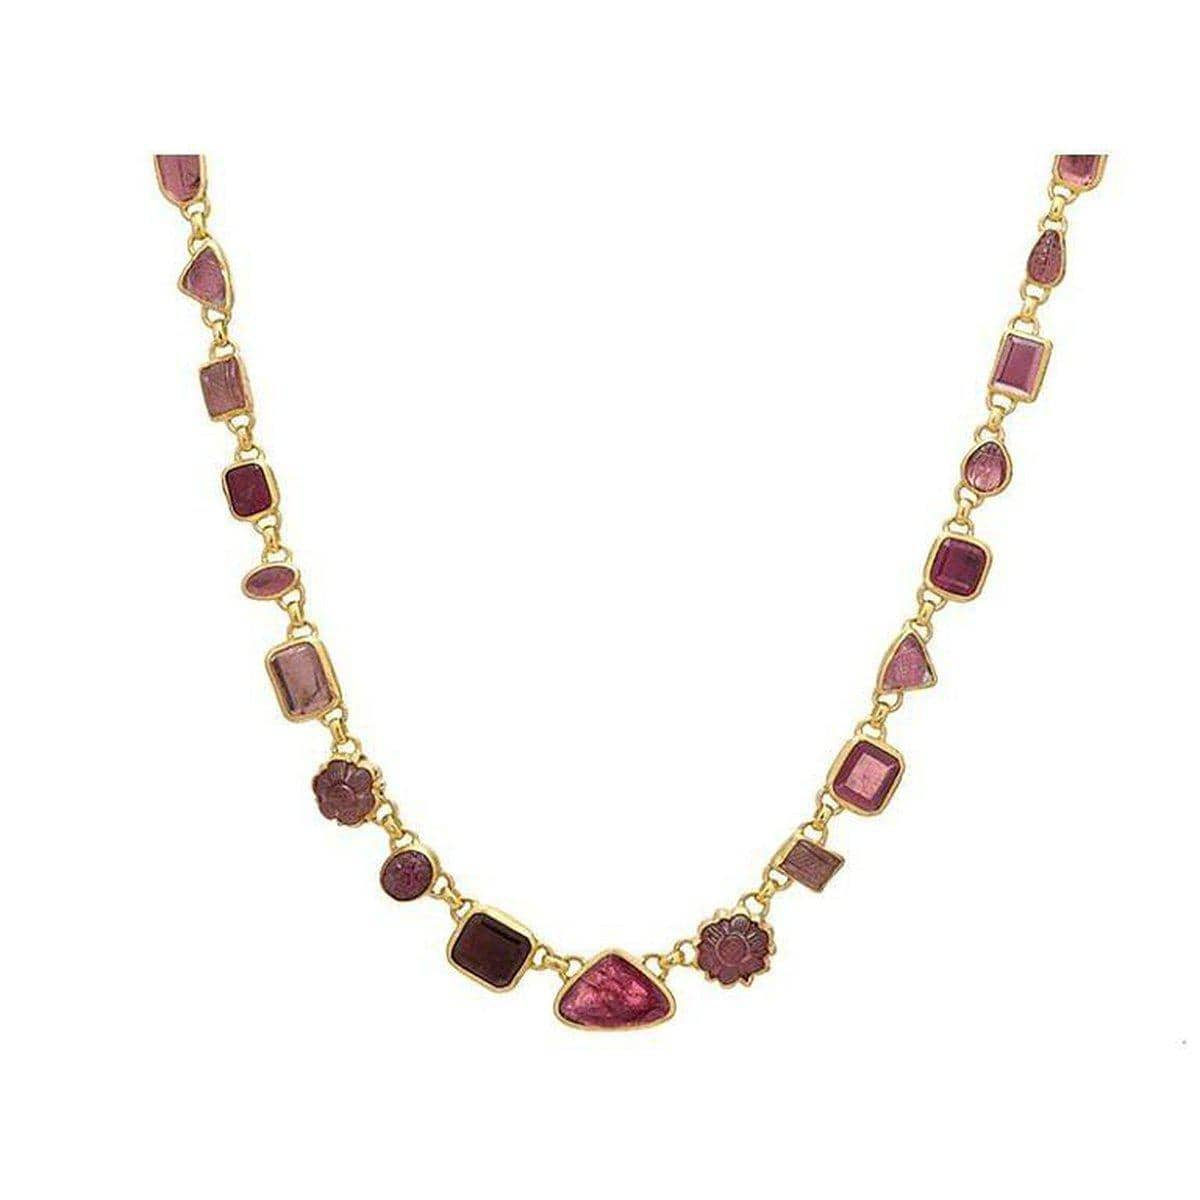 Elements 24K Gold Pink Tourmaline Necklace - N-U24254-PT-GURHAN-Renee Taylor Gallery